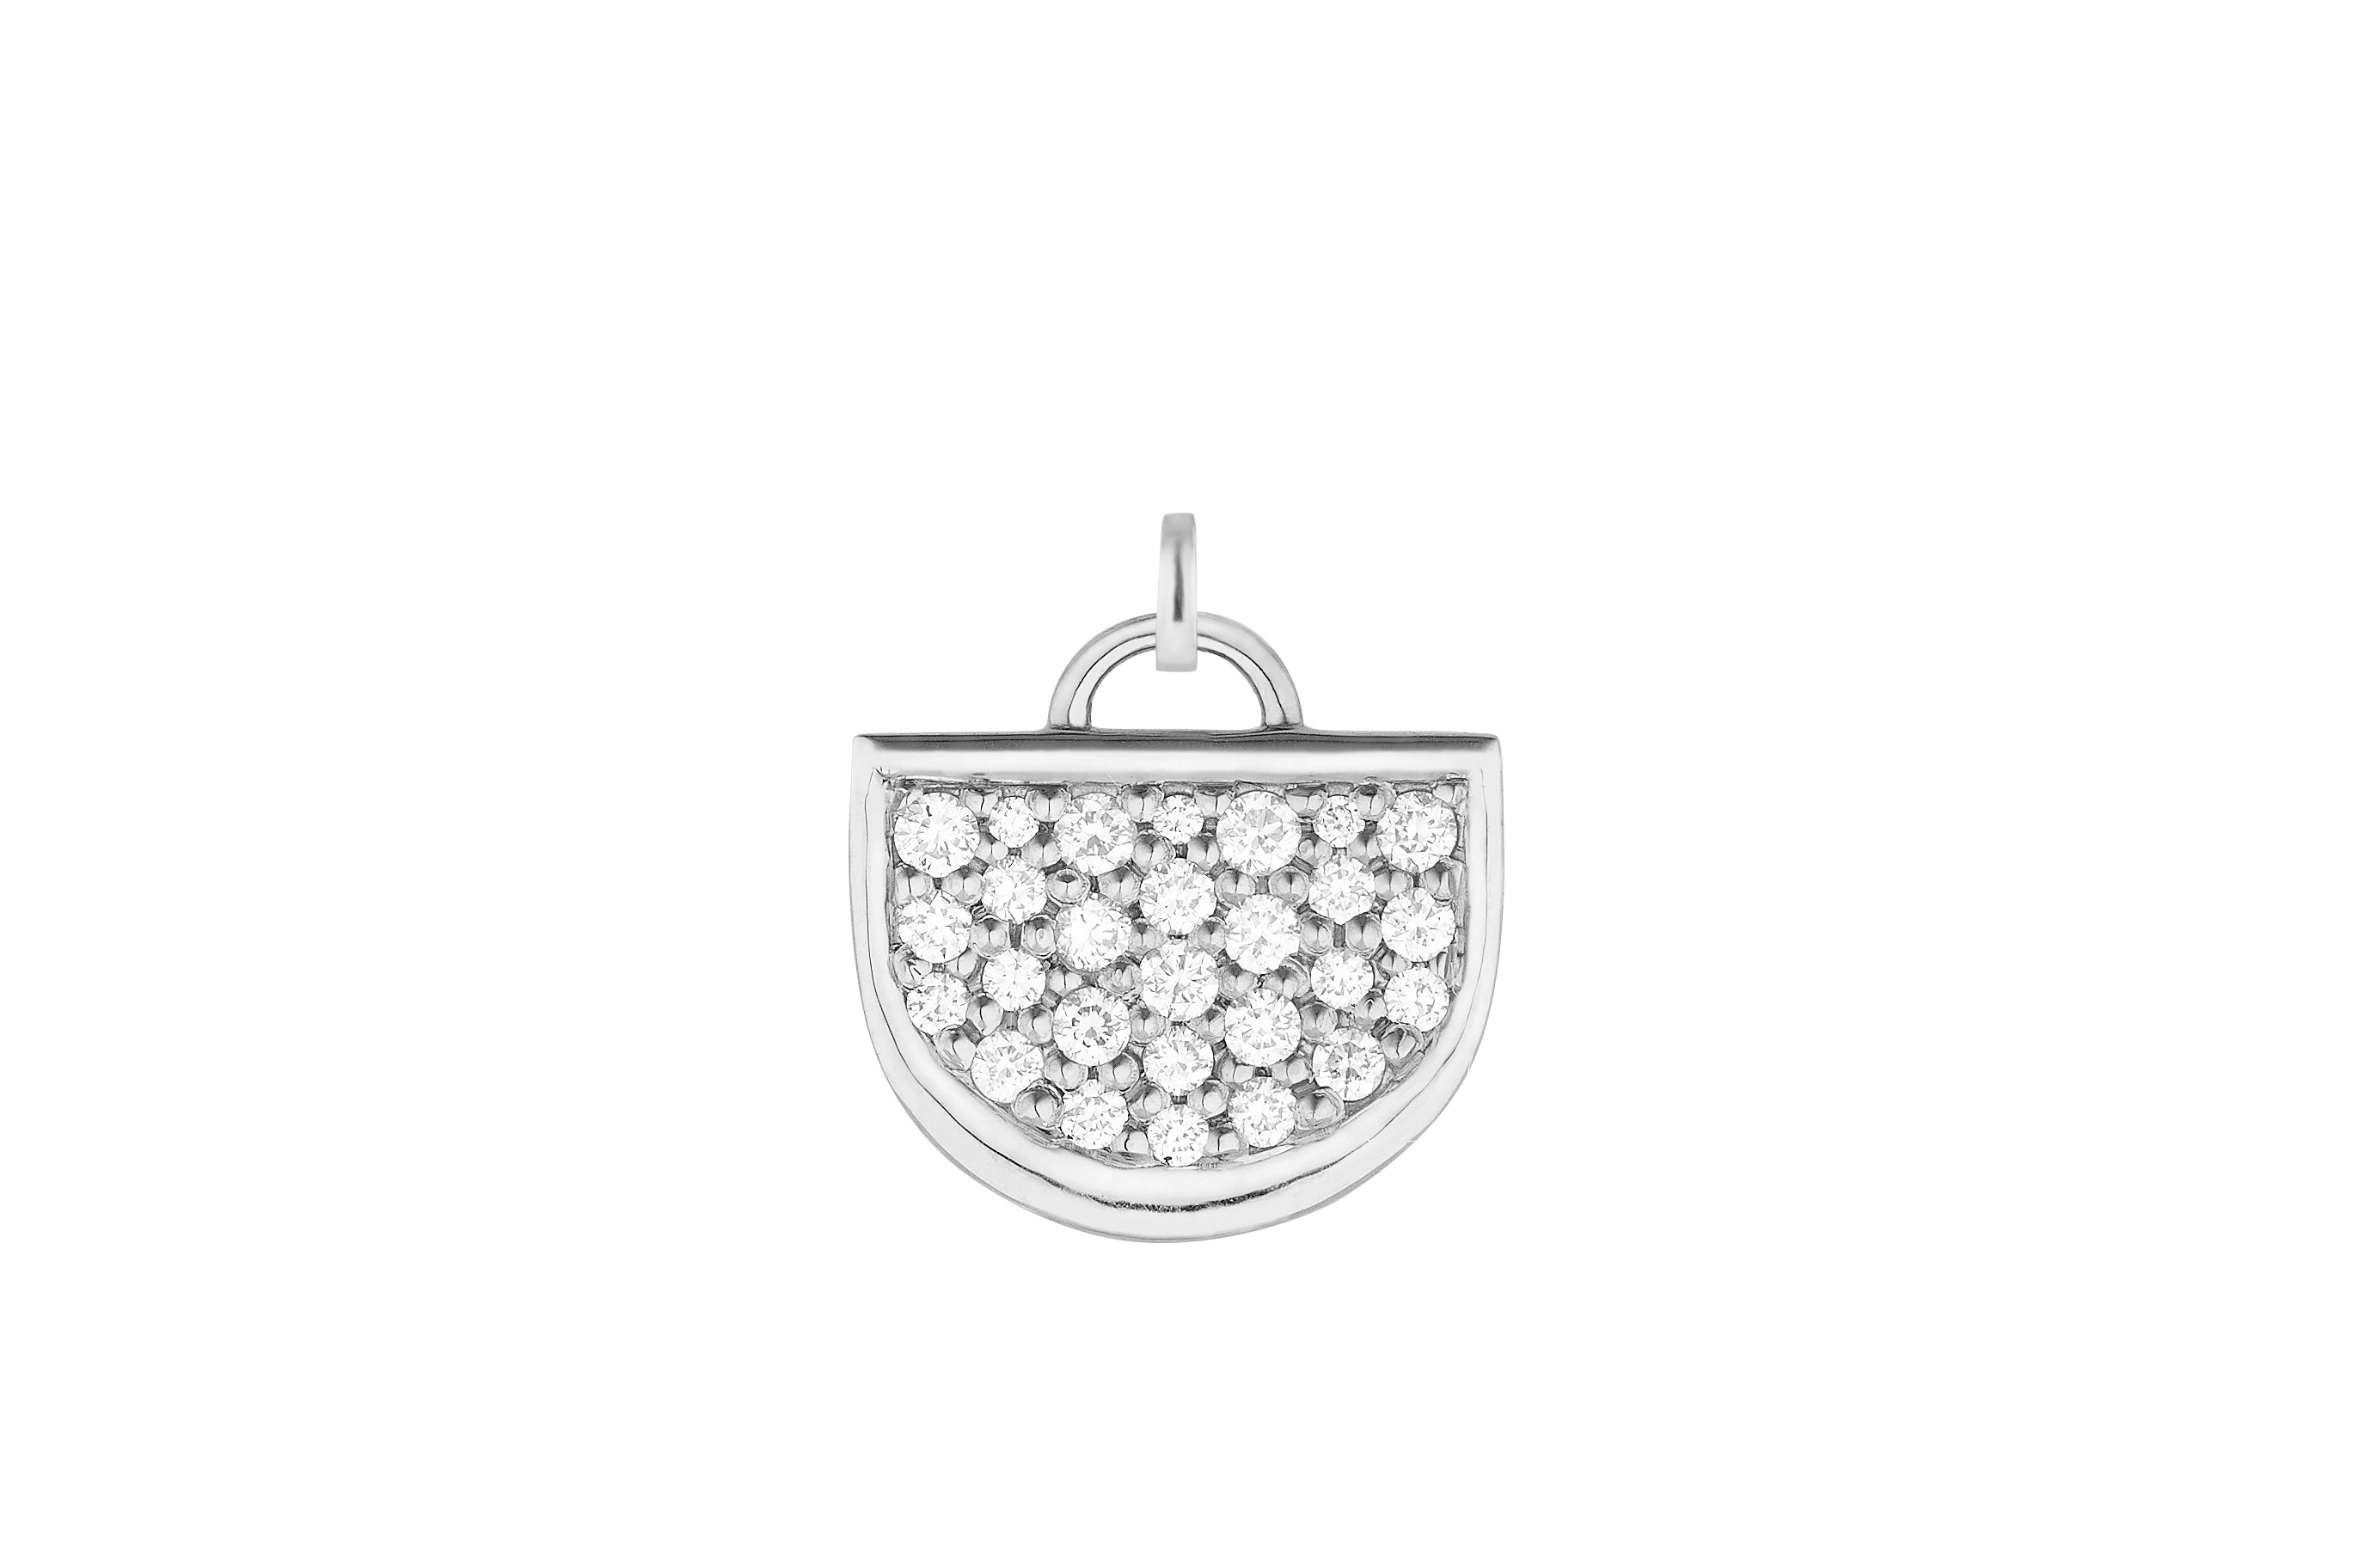 18K White Gold Monogram Single D Charm with Lab Created Diamond Pave w/Removable Bail